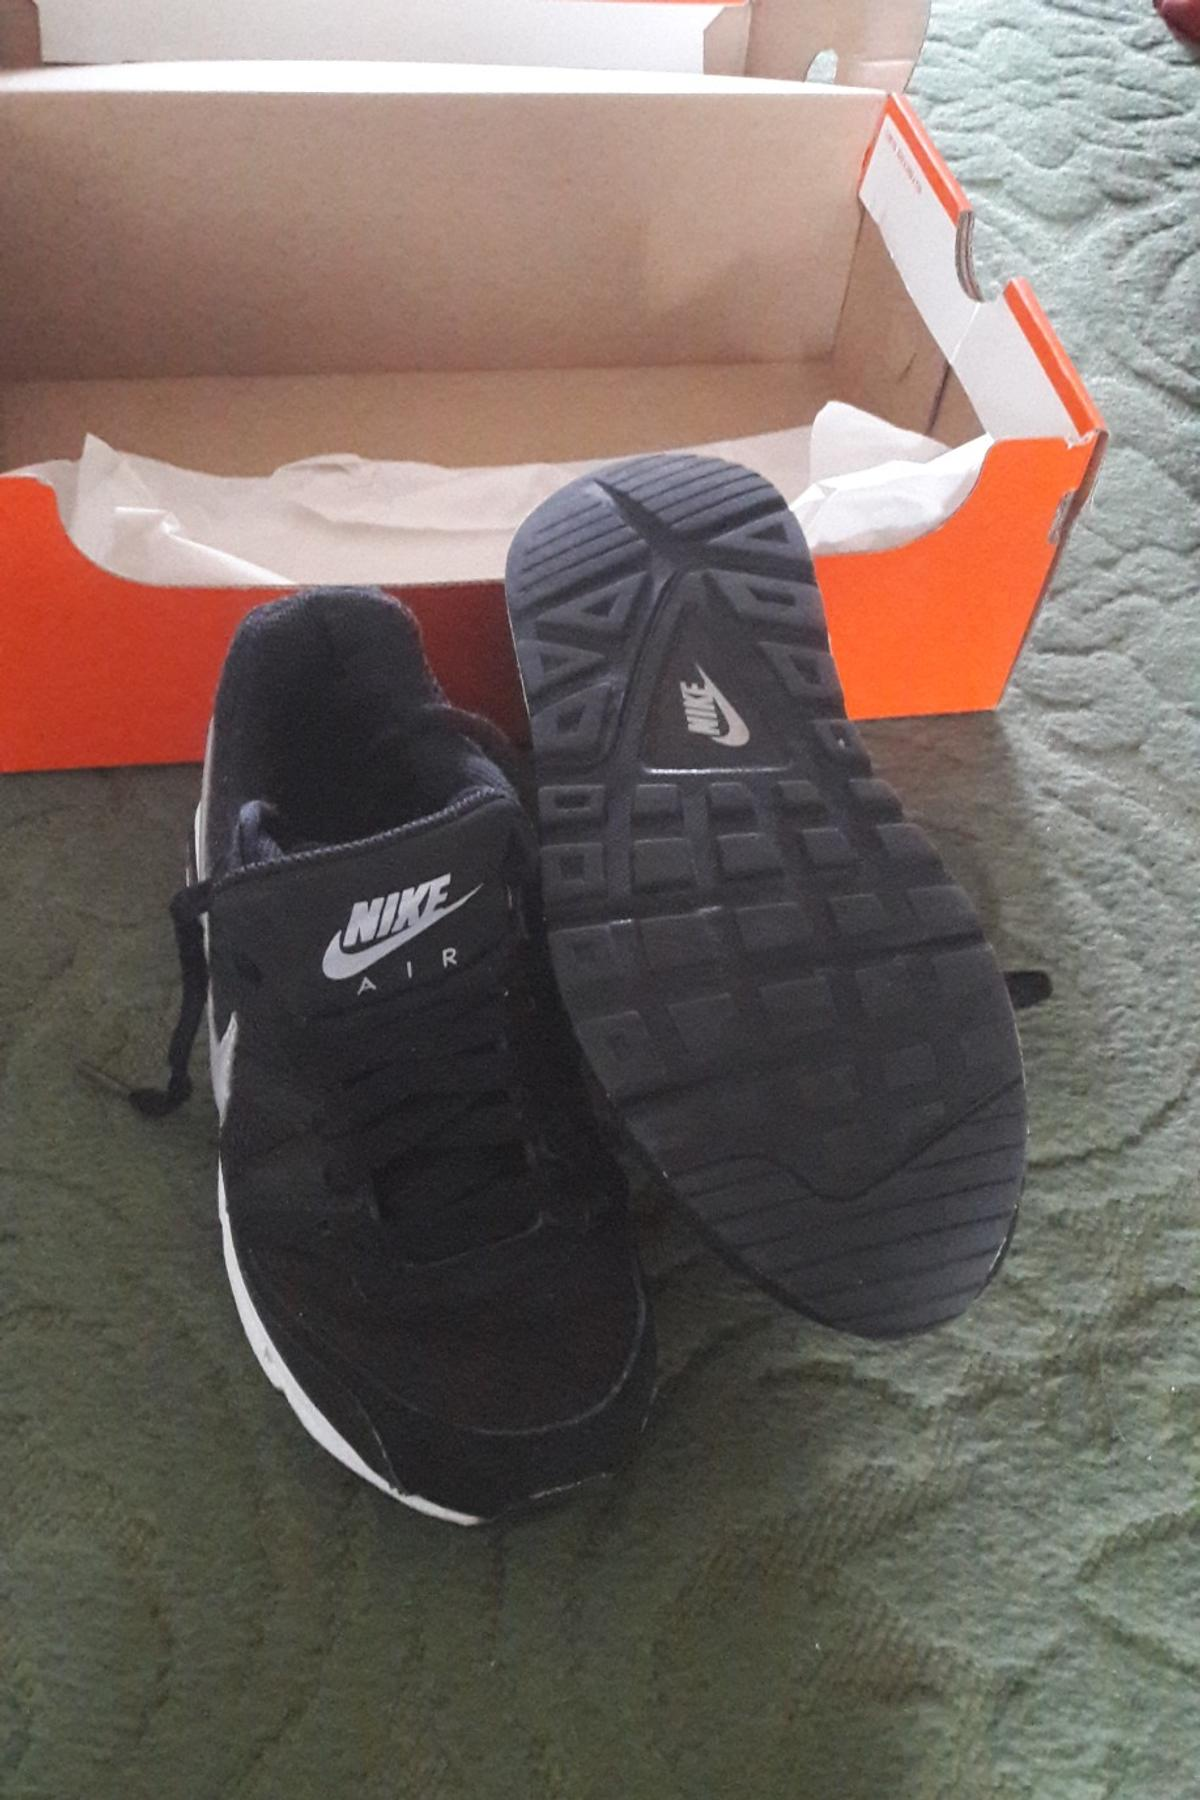 Clothes, Shoes & Accessories Kids' Clothes, Shoes & Accs. The Best Boys Nike Trainers Size 3 Used